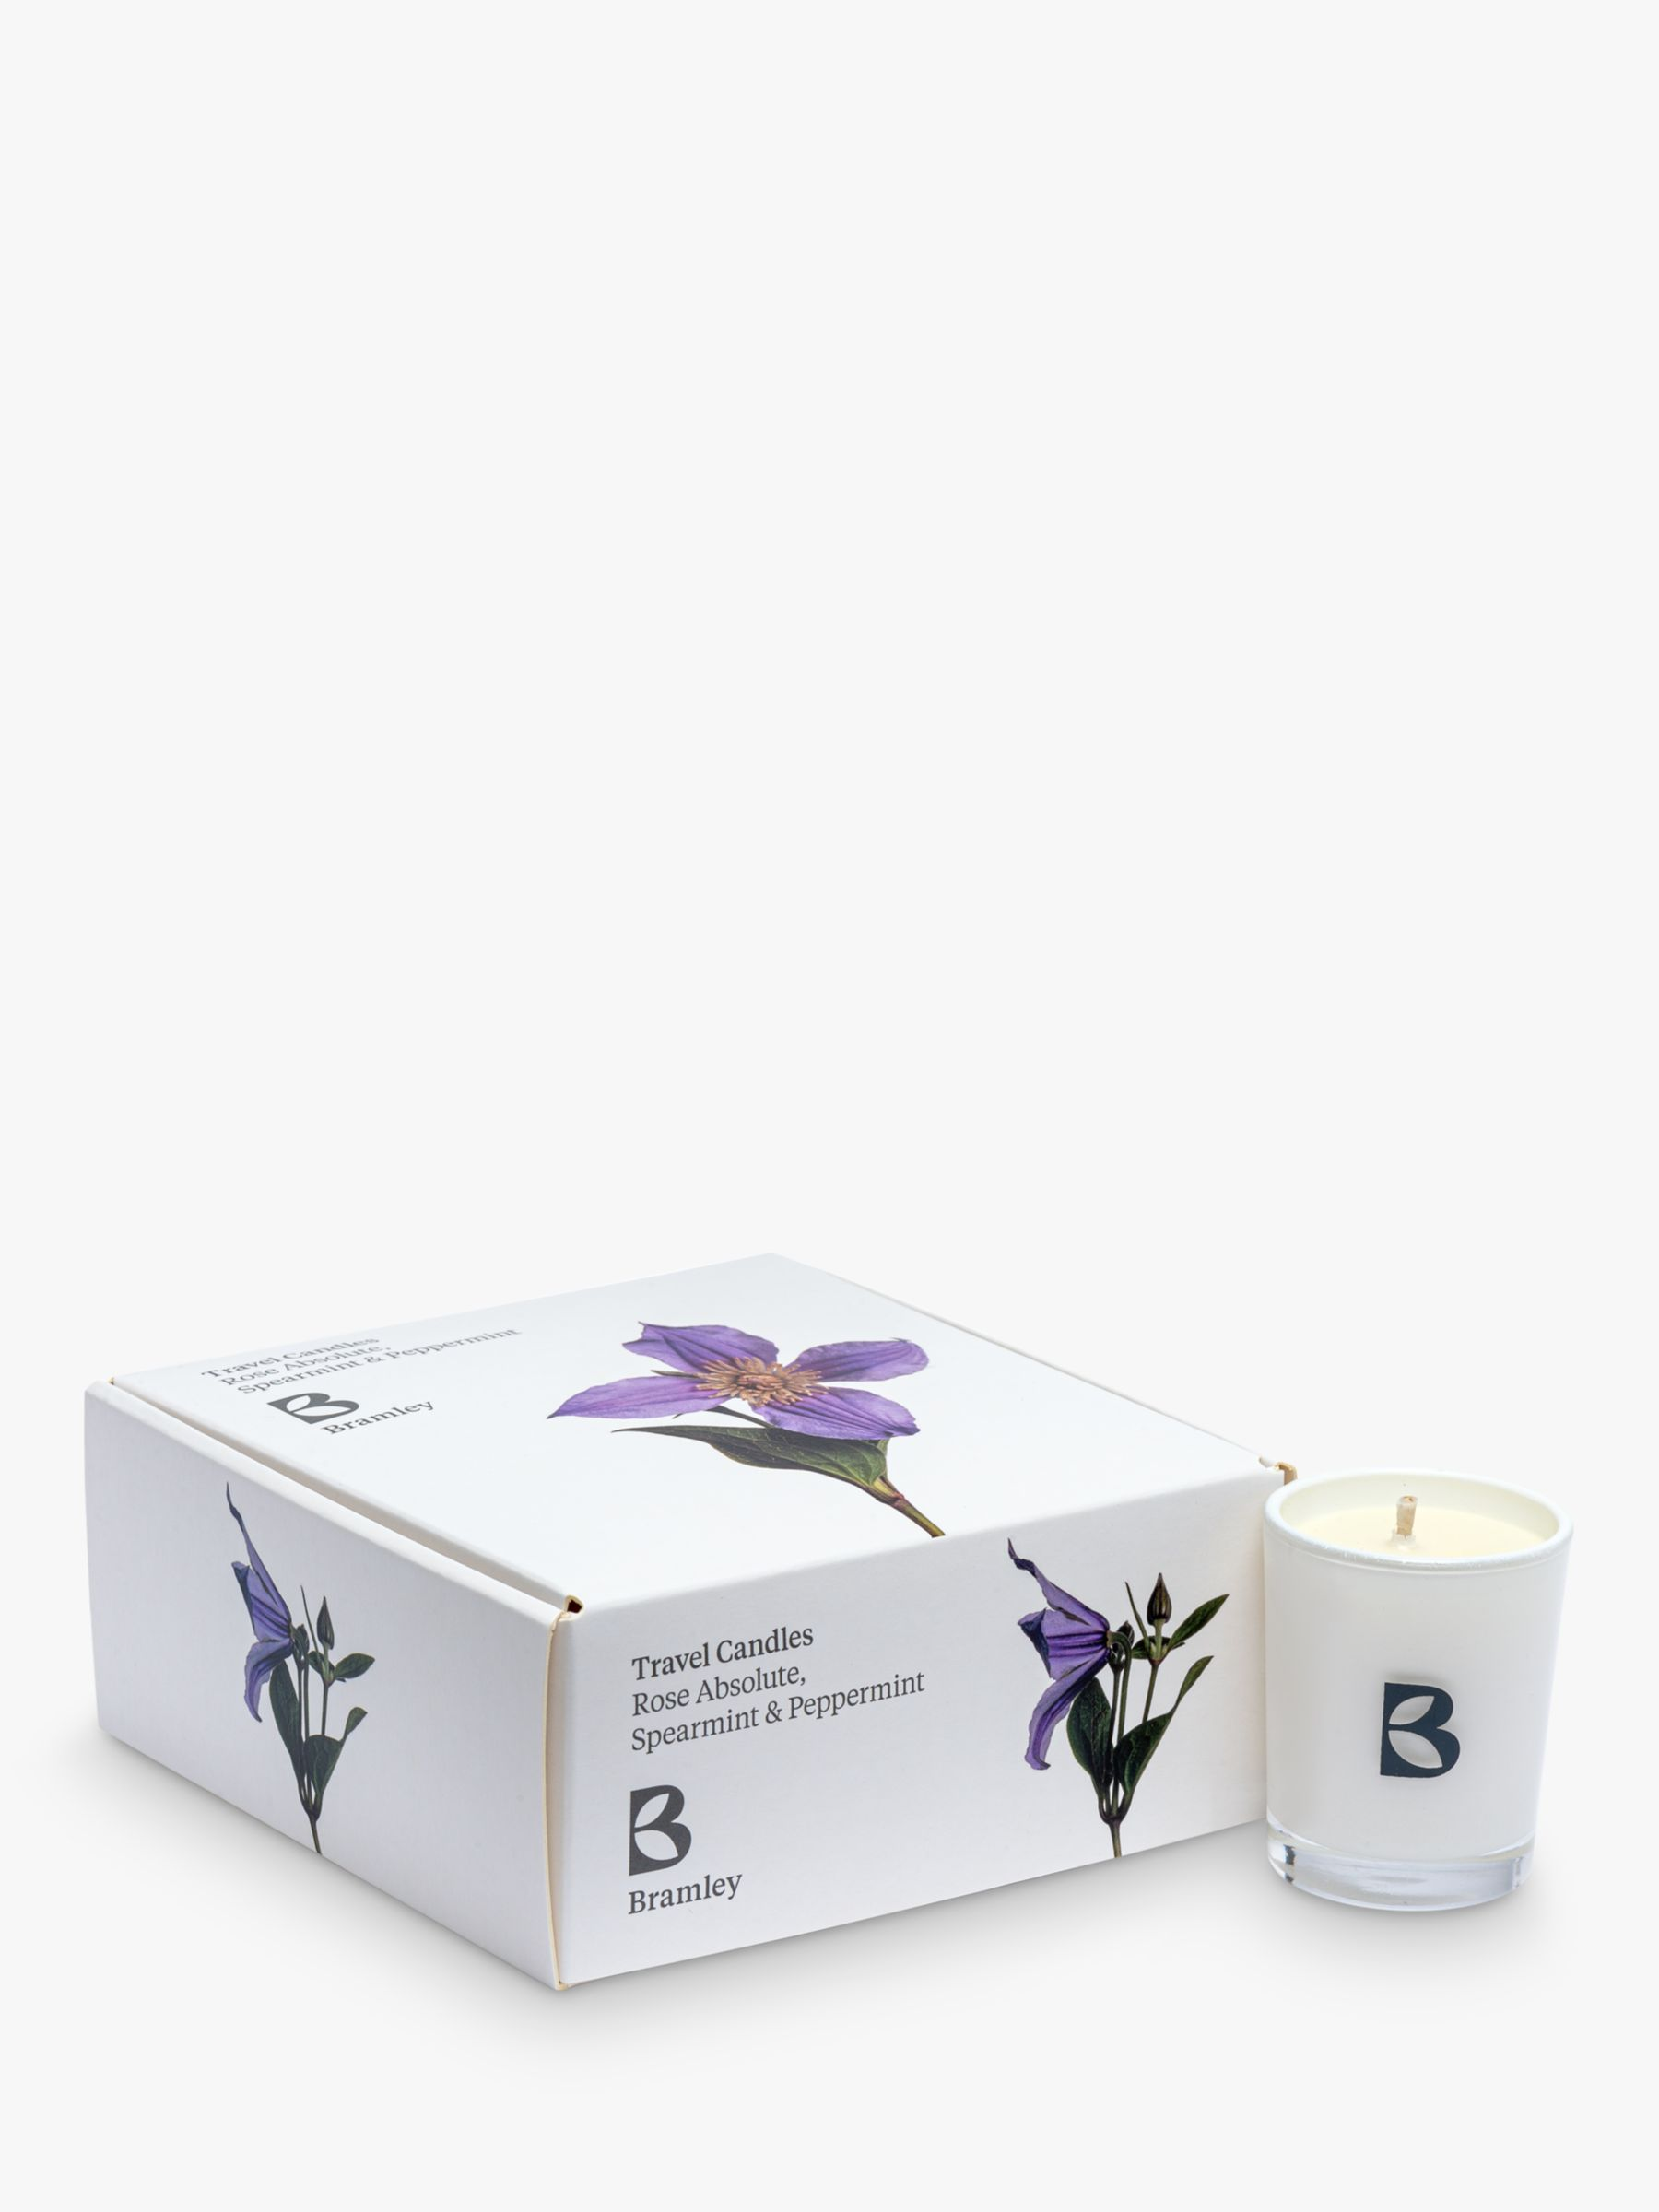 Bramley Travel Scented Candle Gift Set Pack Of 4 50g Each At John Lewis Partners